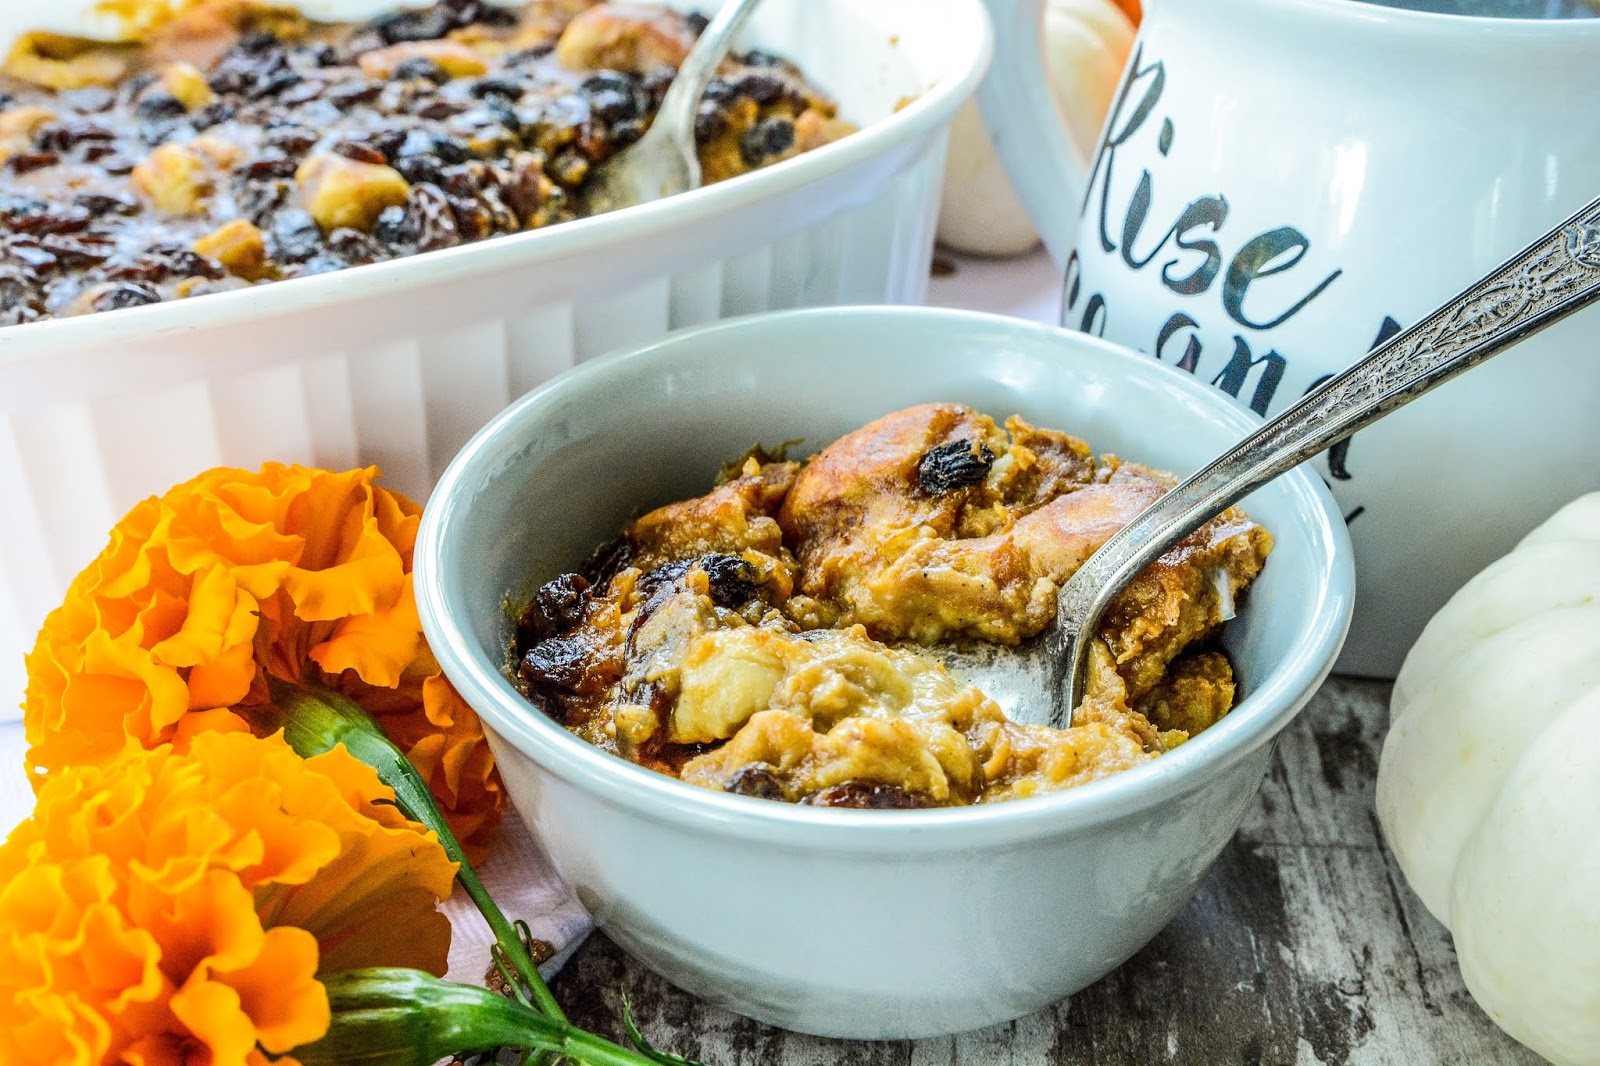 https://www.theresasmixednuts.com/2018/10/pumpkin-brioche-bread-pudding.html